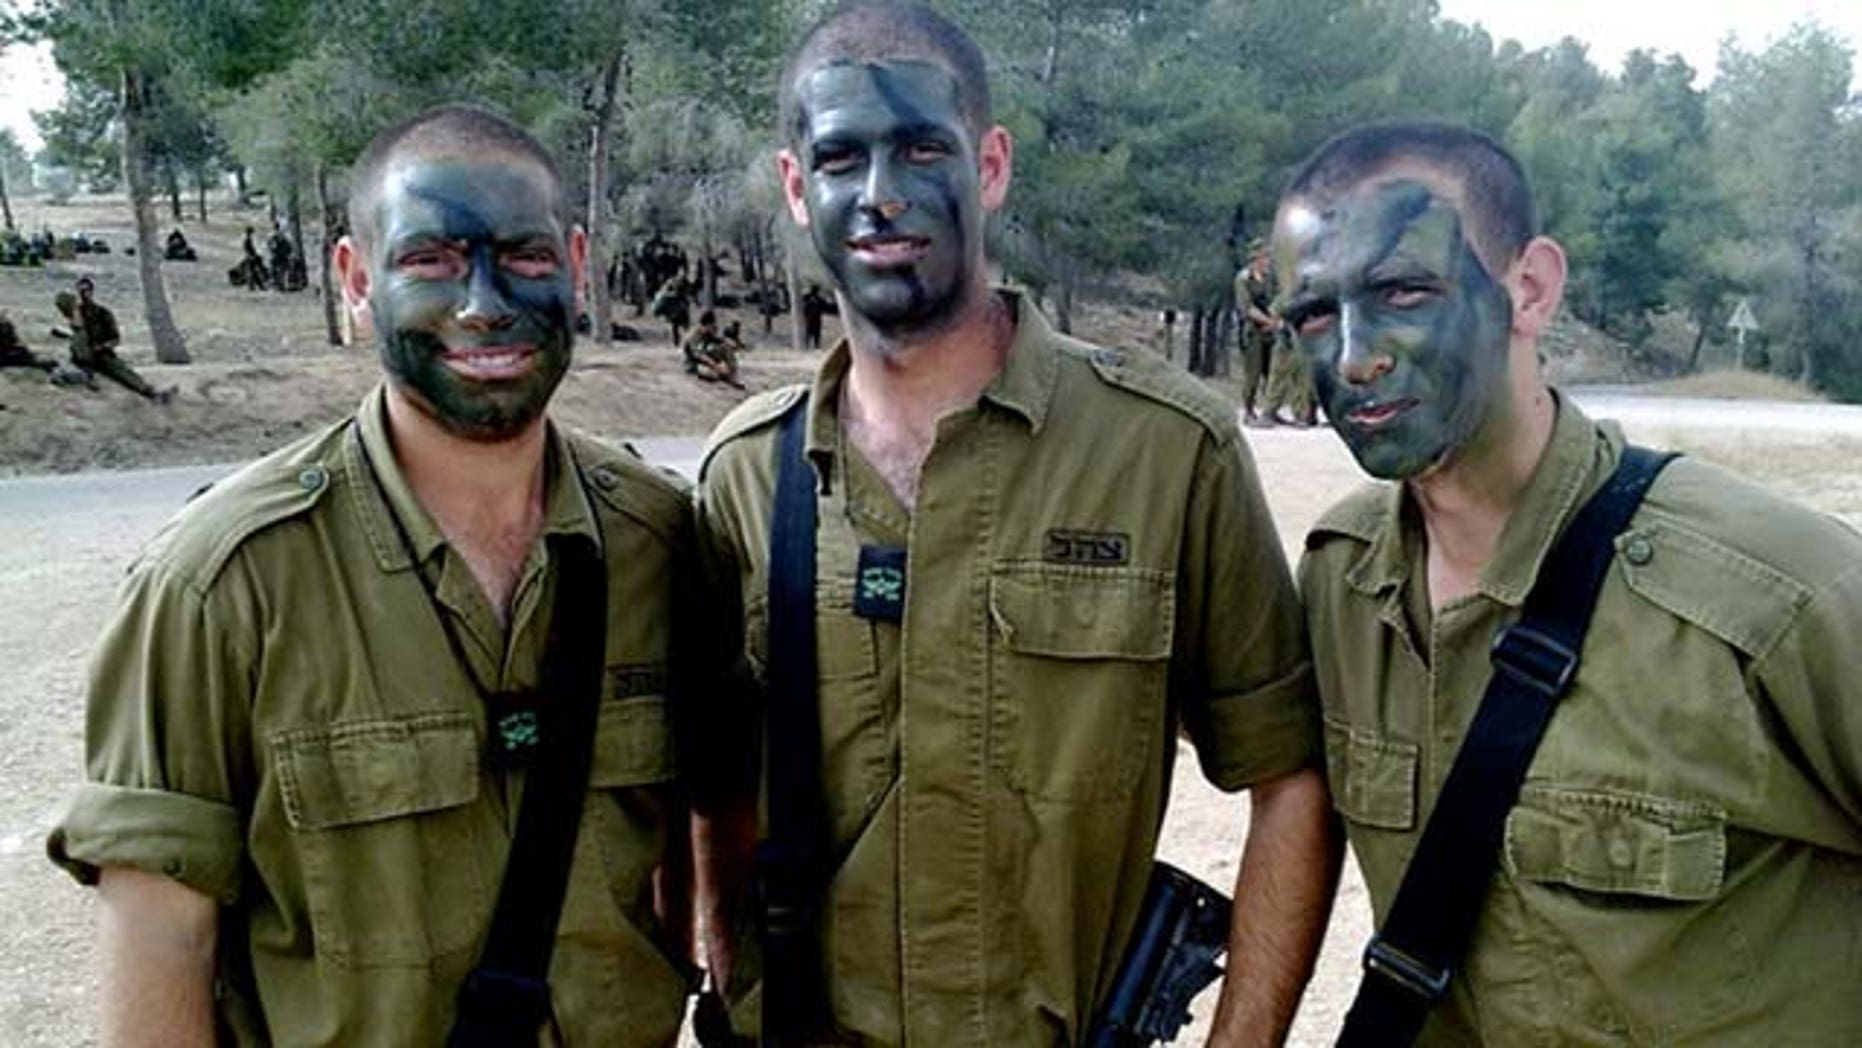 This March 2010 photo provided by Mike Fishbein shows Fishbein, middle, a U.S.-born soldier from Los Angeles, with fellow Americans David Wisefield, left, and Ilan Benjamin, all fighting for the Israel Defense Forces. (AP Photo/Courtesy Mike Fishbein)